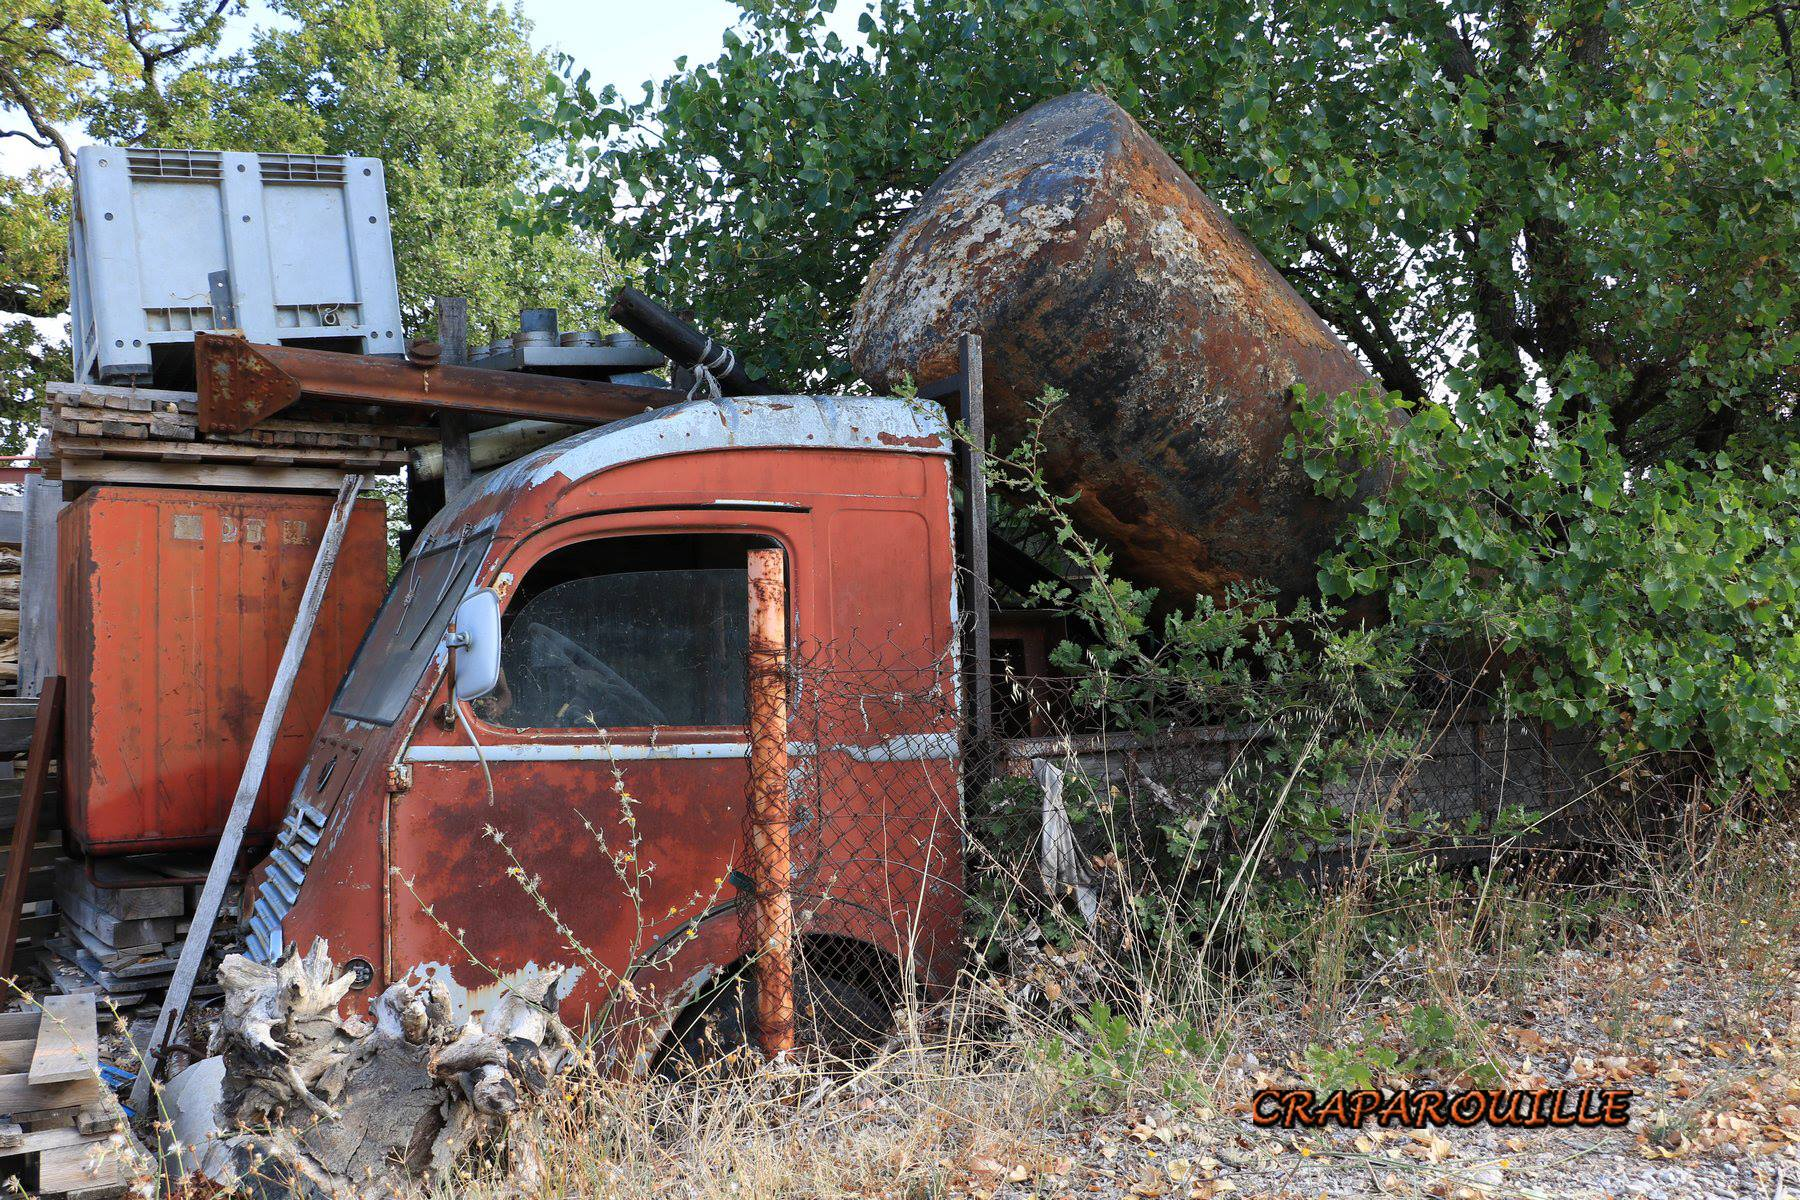 Photography-Diamonds-in-Rust-Craparouille-74